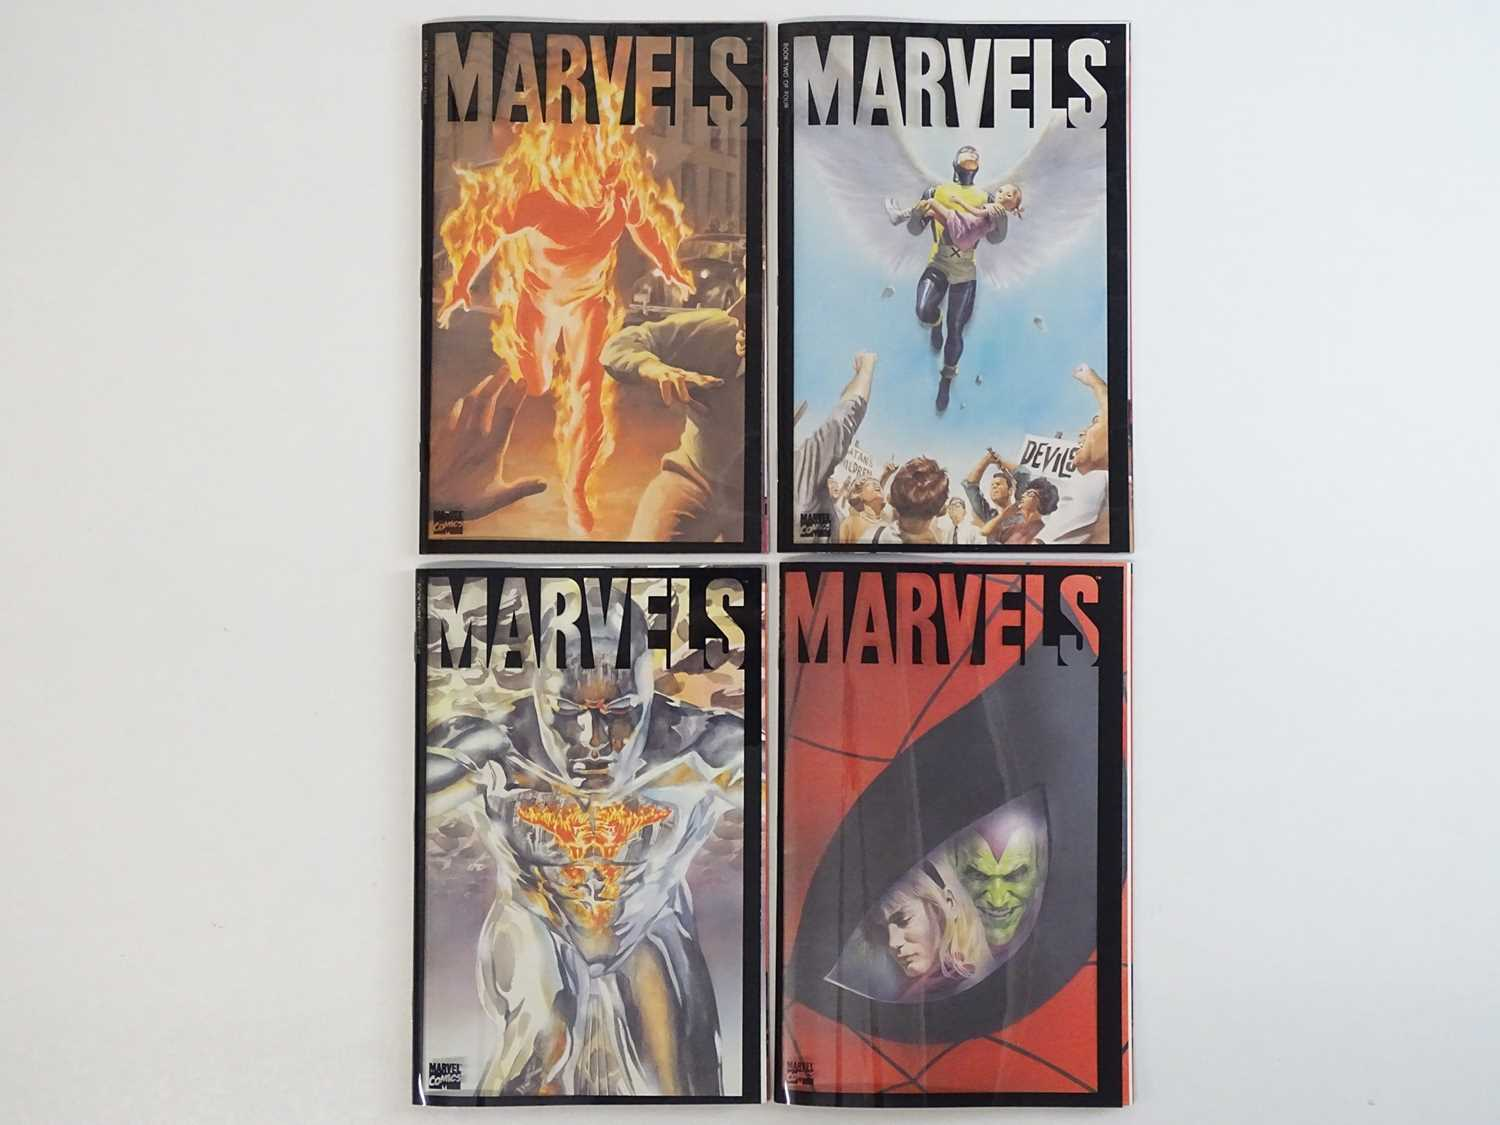 MARVELS #1, 2, 3, 4 - (4 in Lot) - (1994 - MARVEL) Includes complete four (4) issue limited series +